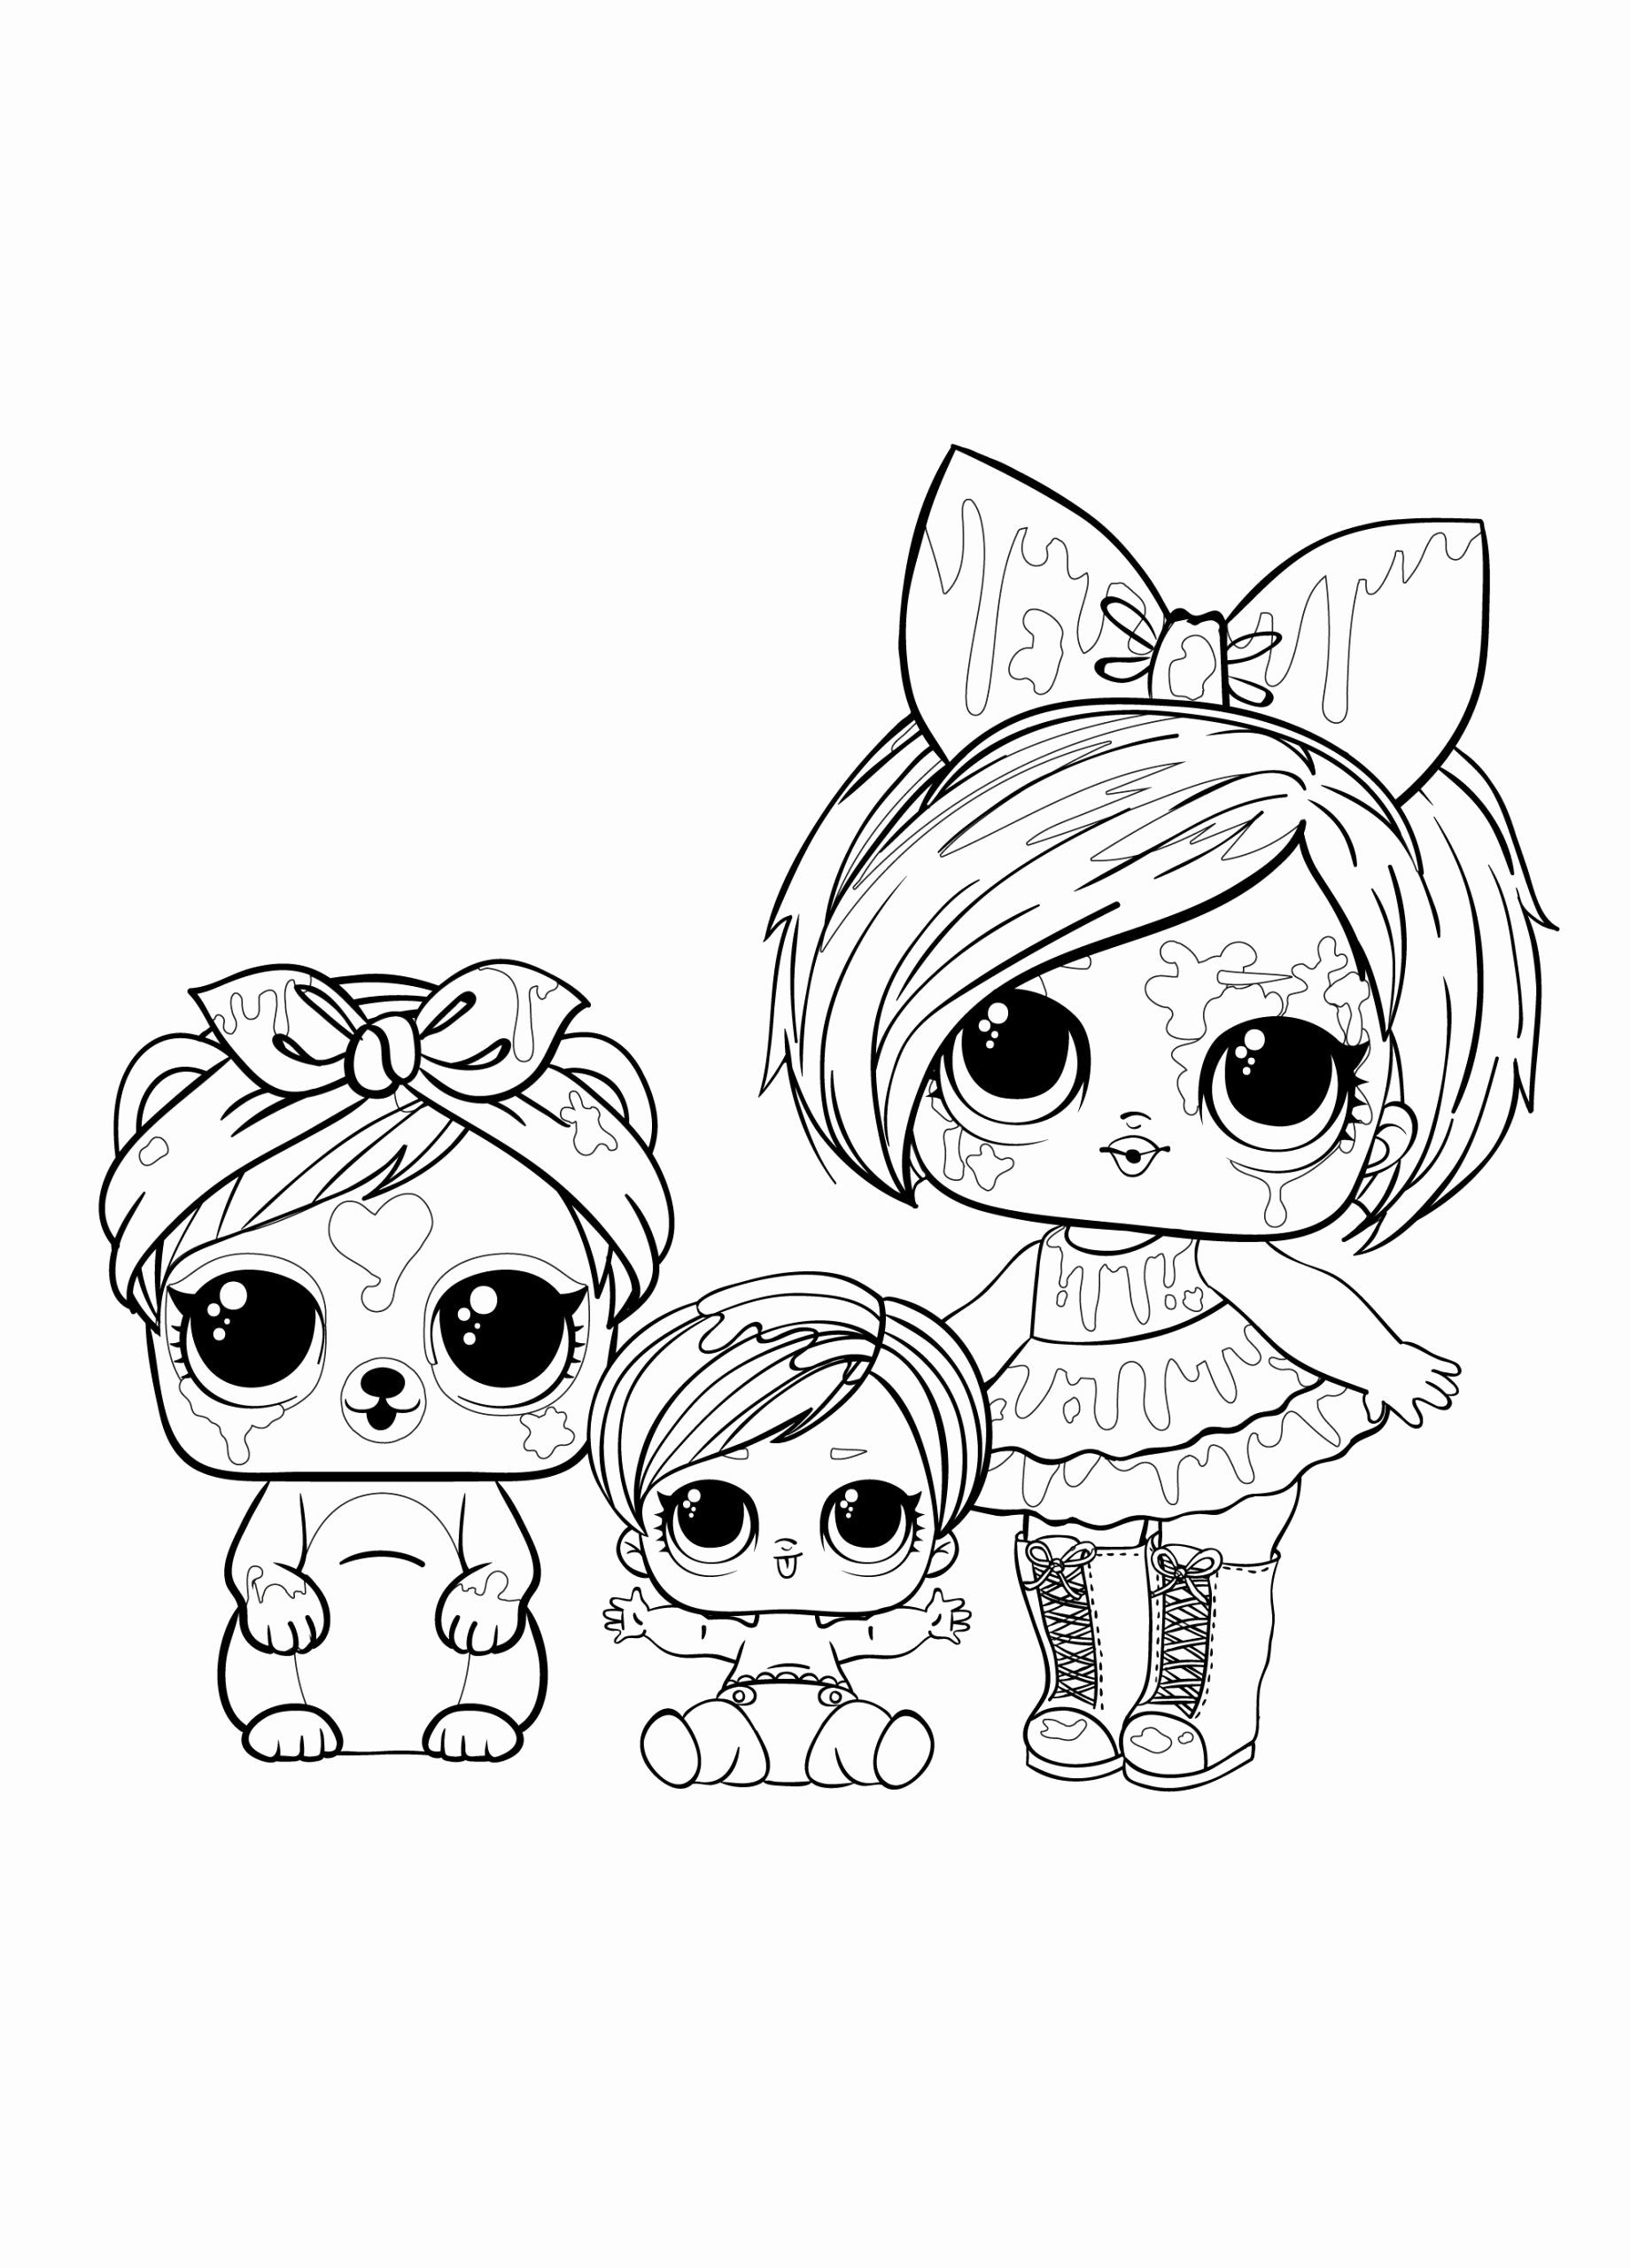 Halloween Coloring Sheets For Toddlers Fresh Coloring Pages Coloring Ideas Lol Printable T In 2020 Halloween Coloring Sheets Mermaid Coloring Pages Cute Coloring Pages